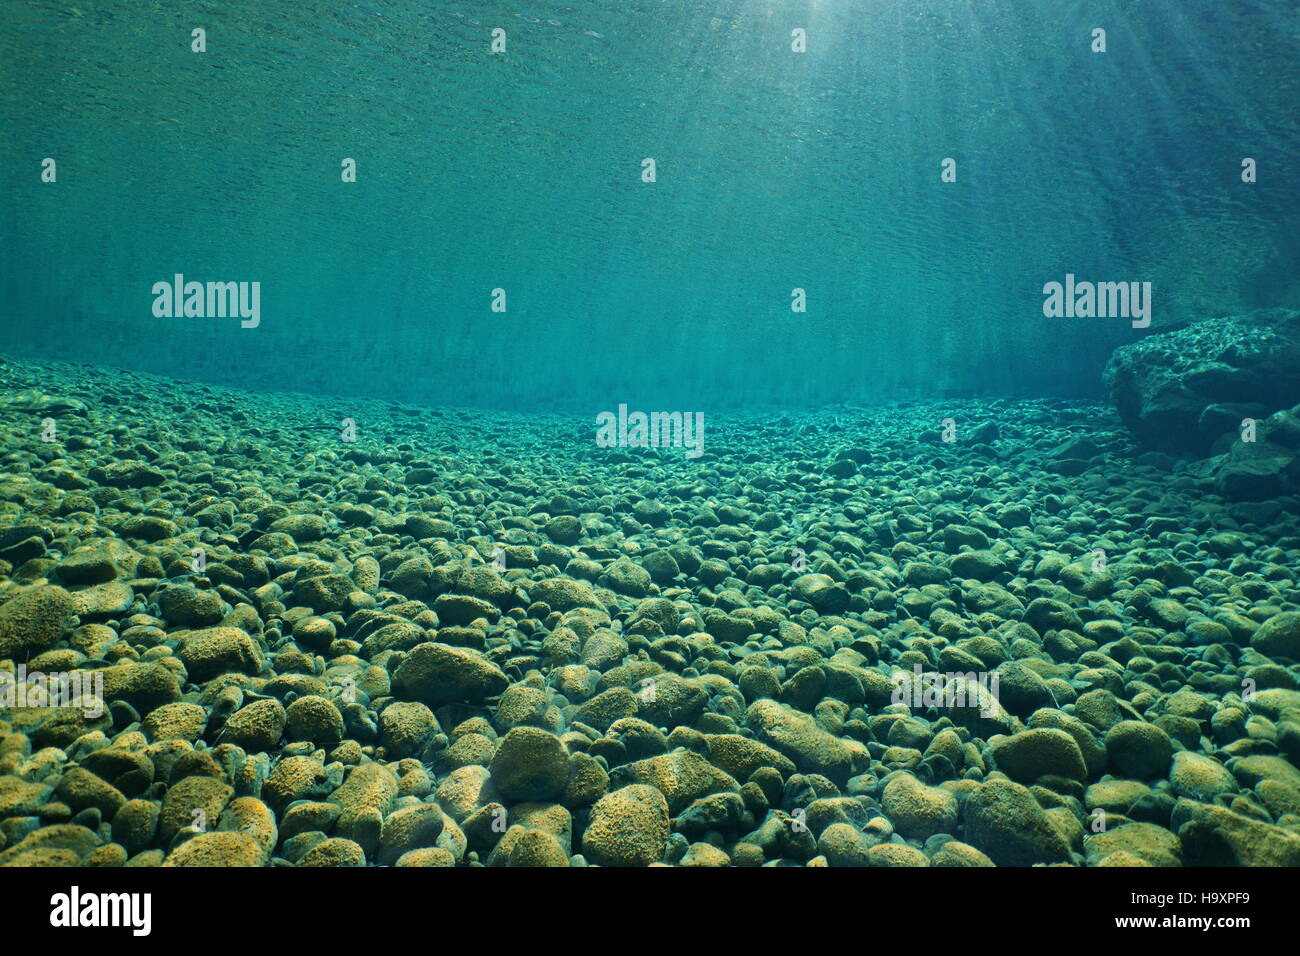 Pebbles underwater on riverbed with clear freshwater and sunlight through water surface natural scene Dumbea river - Stock Image